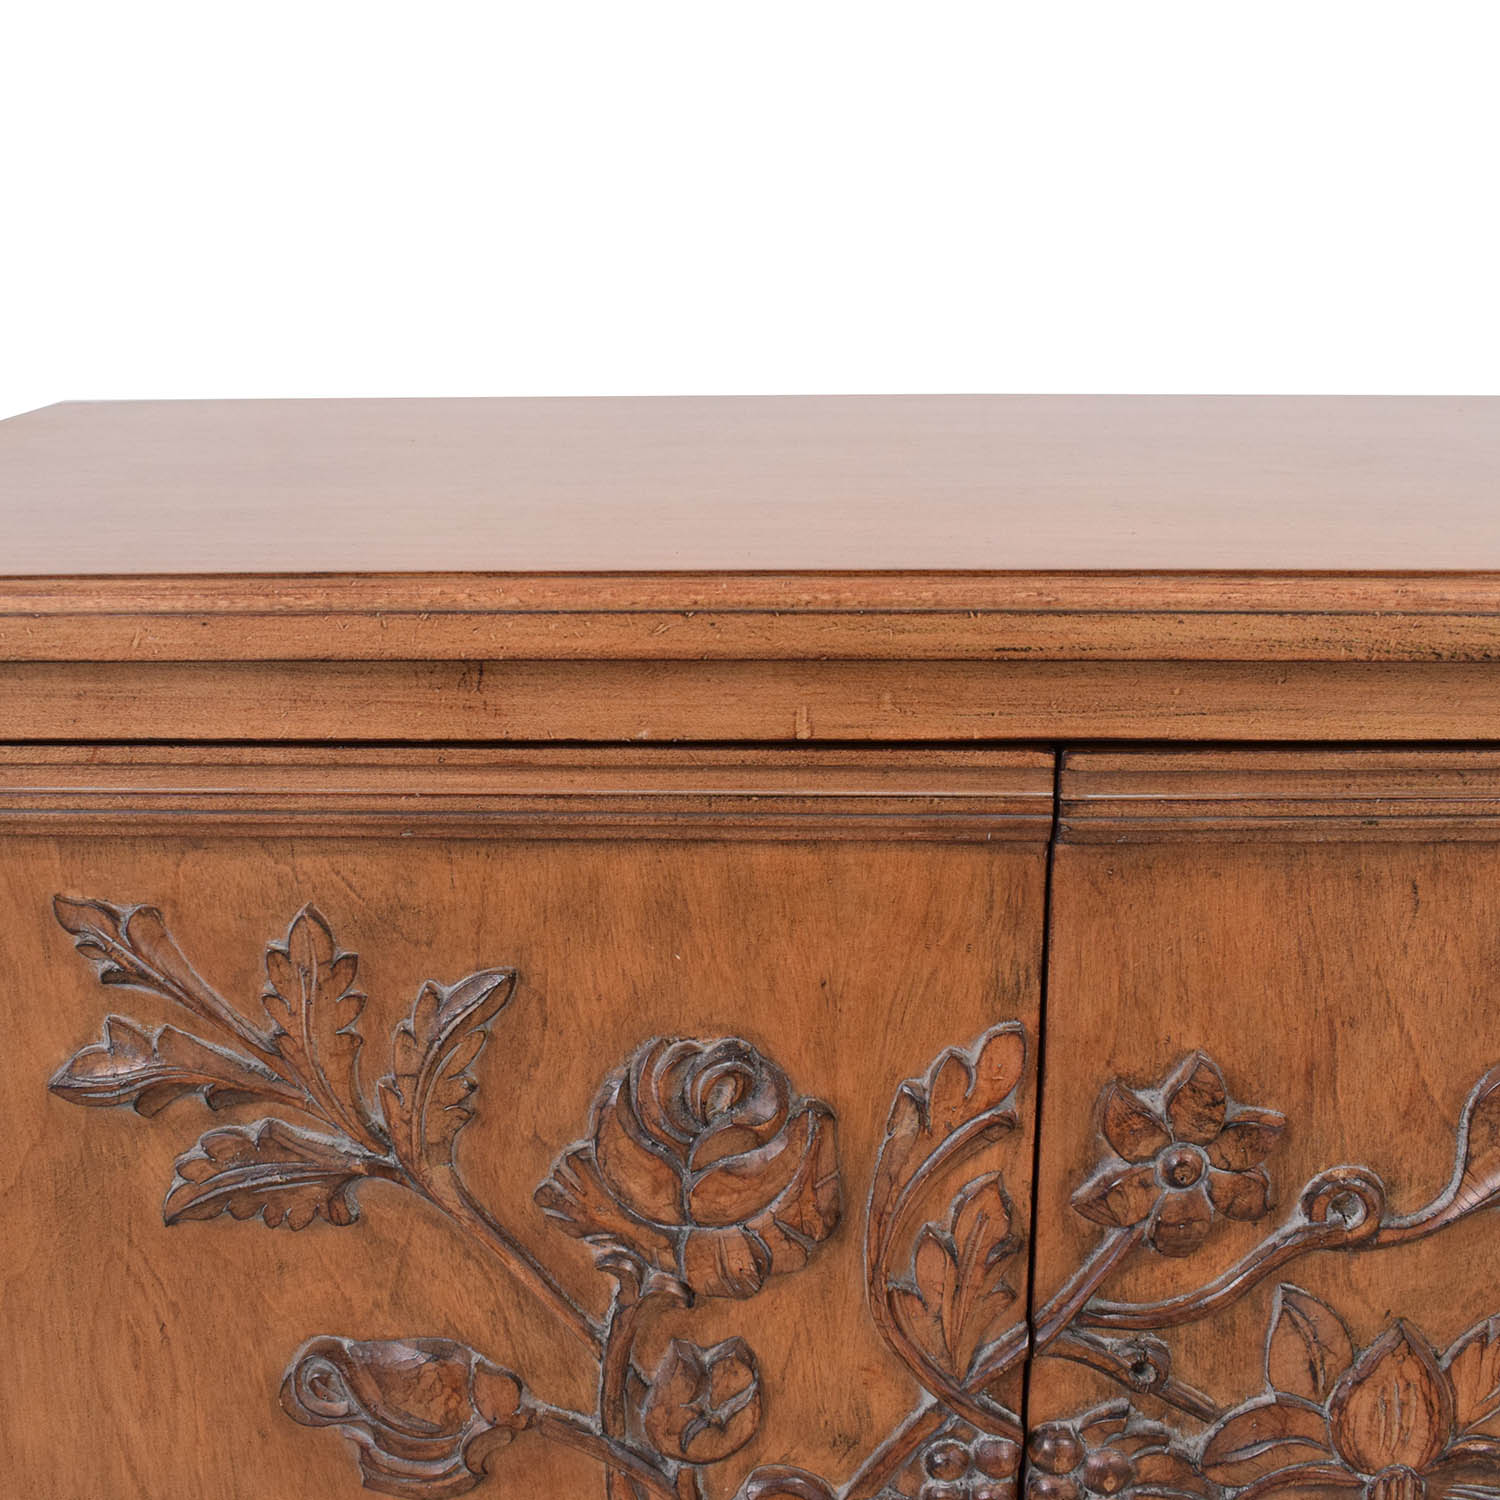 Invincible Invincible Fine Furniture Hand Carved Cabinet Cabinets & Sideboards